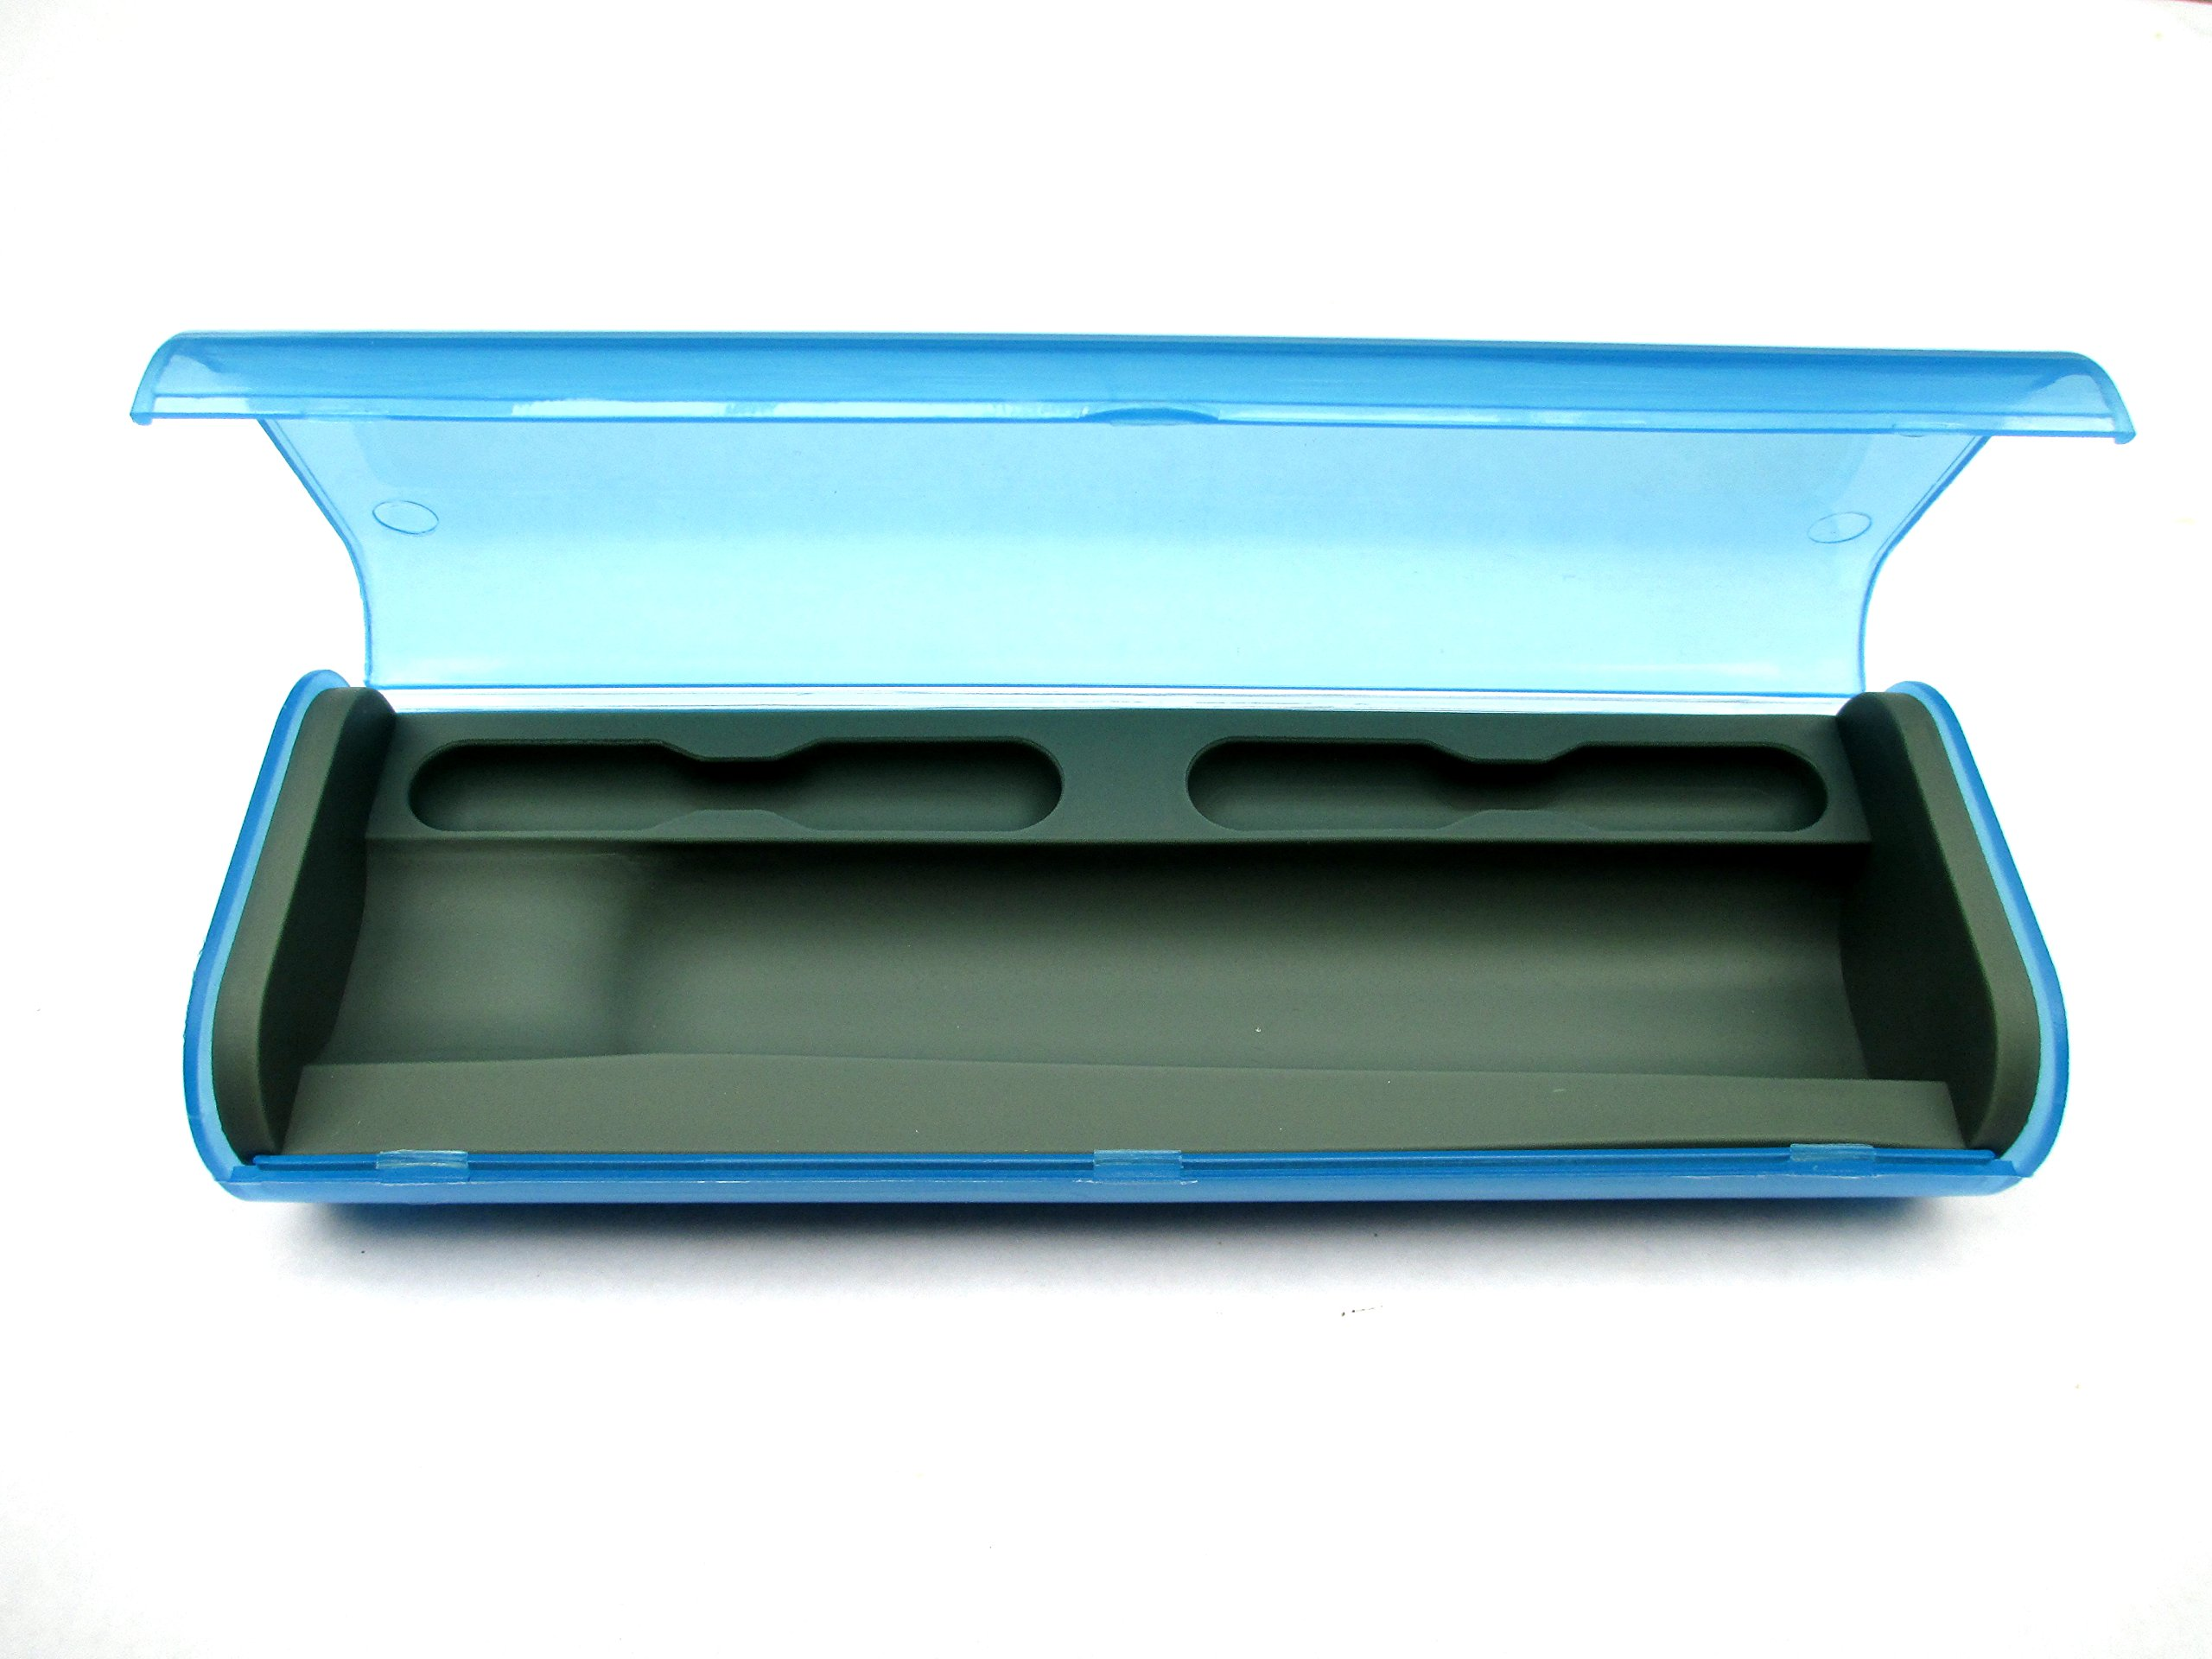 USonline911 Replacement Plastic Travel Case compatible with Braun Oral-B Toothbrushes D12,DB4510,D16,D20,OC20,600,650,1000,2000,3000… (Blue)